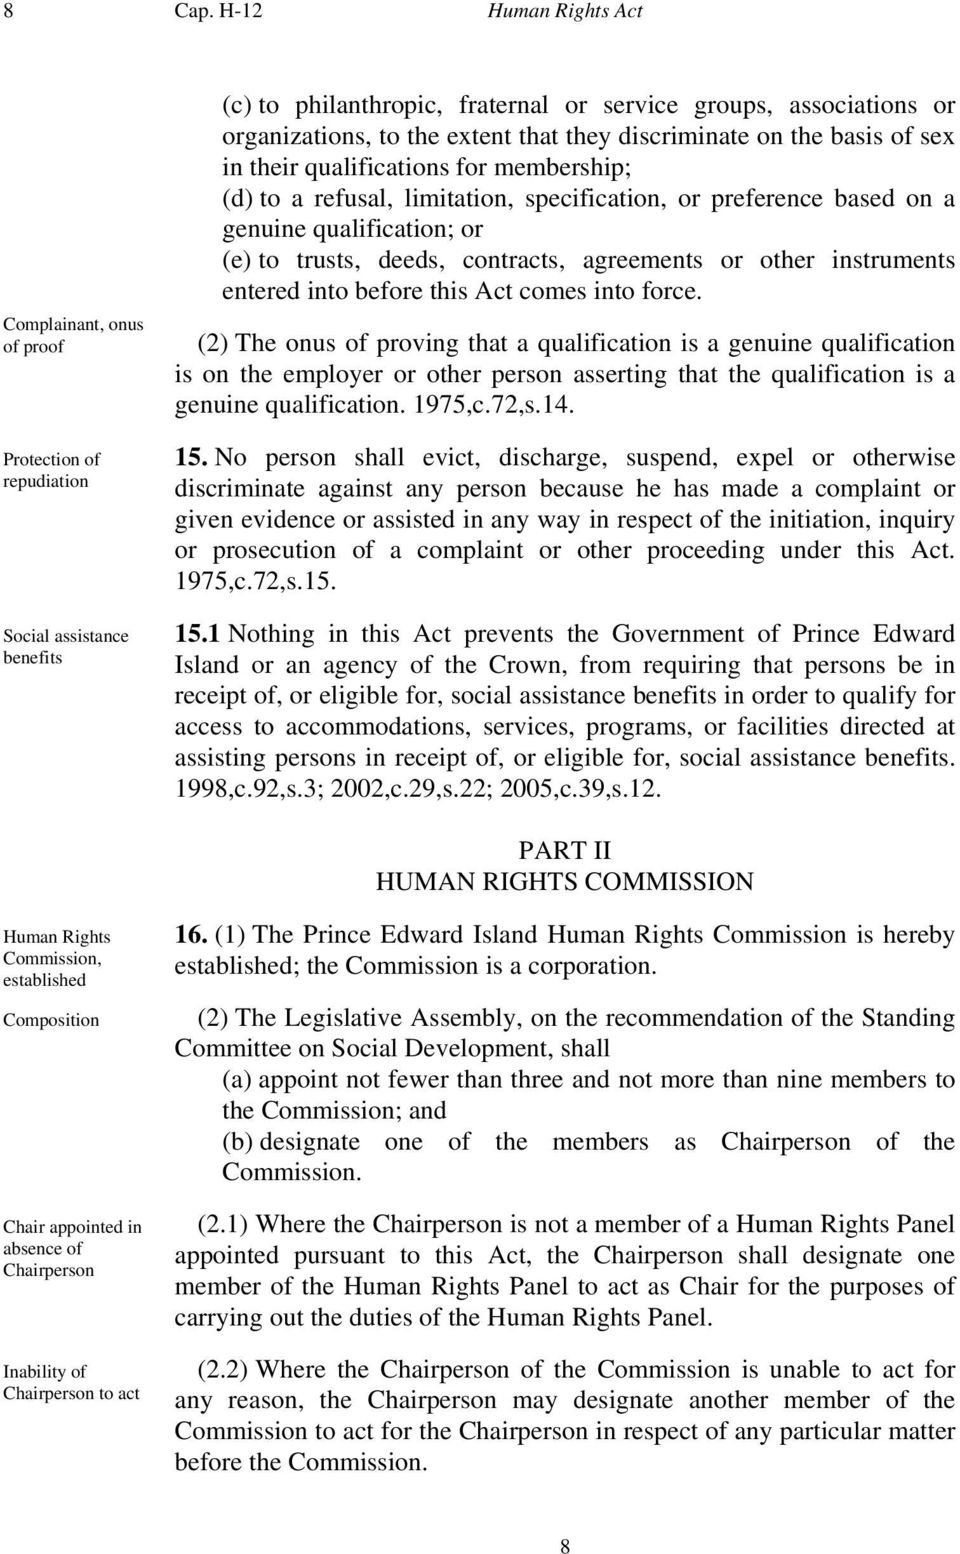 that they discriminate on the basis of sex in their qualifications for membership; (d) to a refusal, limitation, specification, or preference based on a genuine qualification; or (e) to trusts,